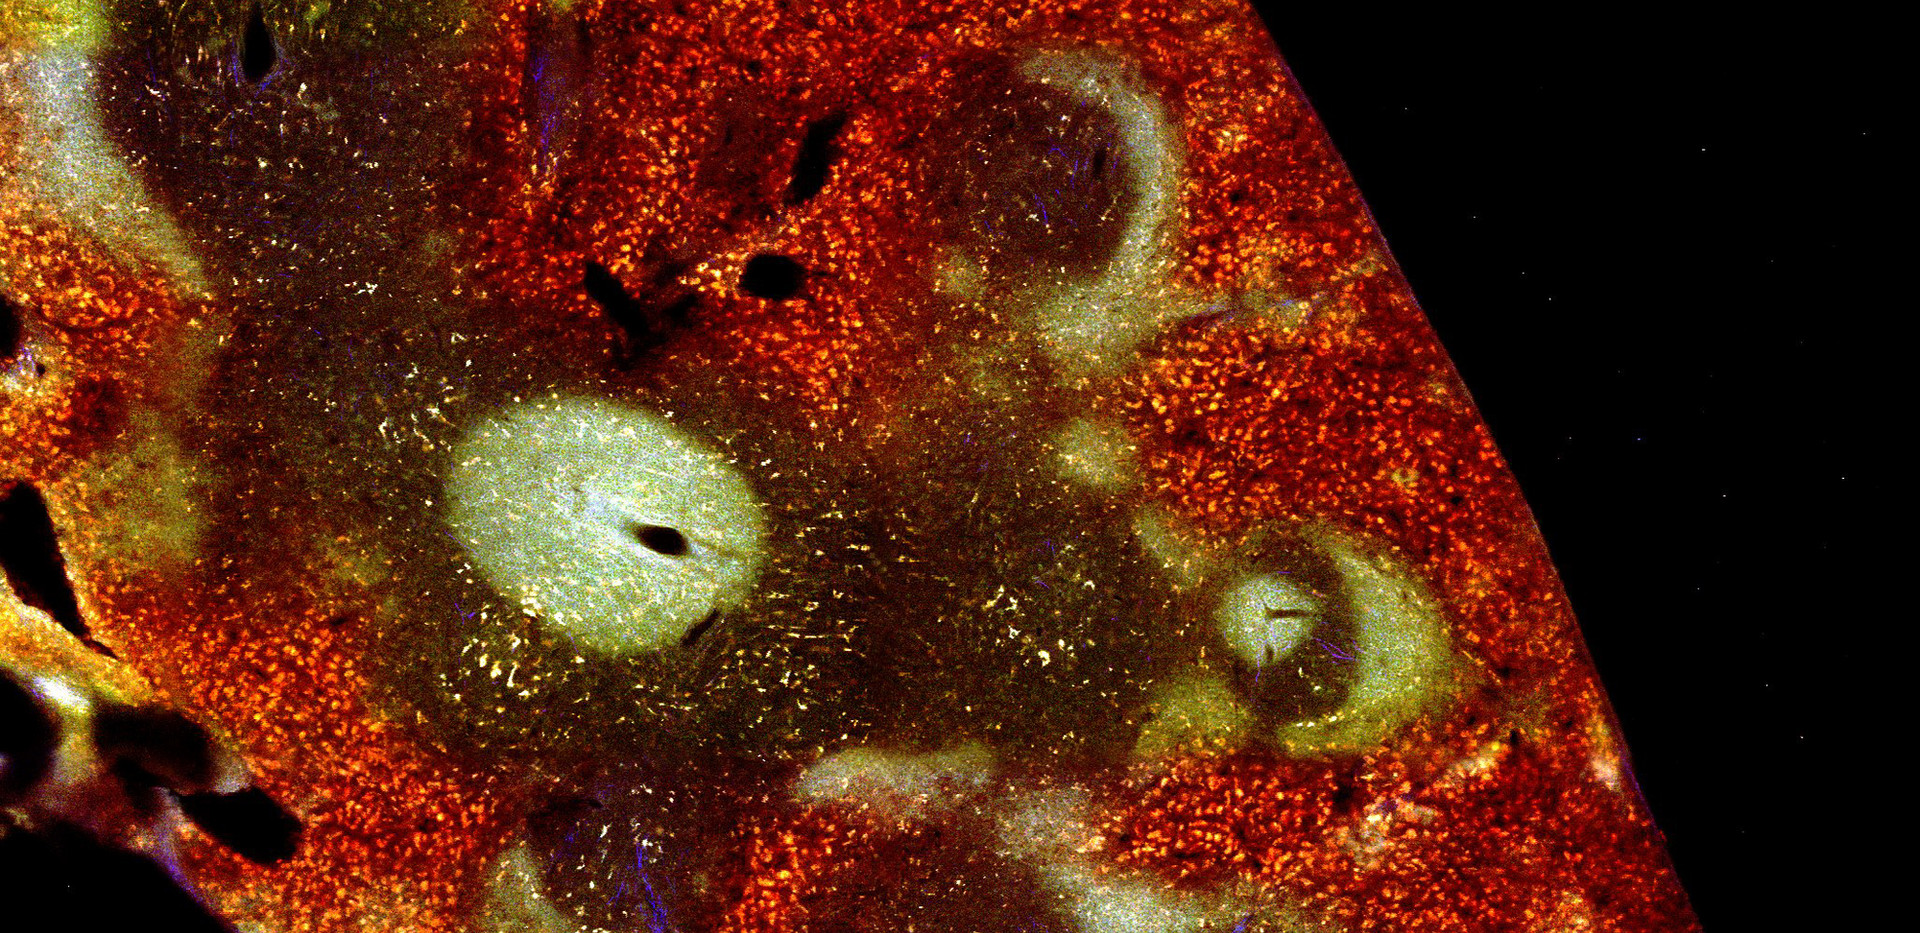 Species: Mouse Tissue: Spleen Fluorophore: Autofluorescence